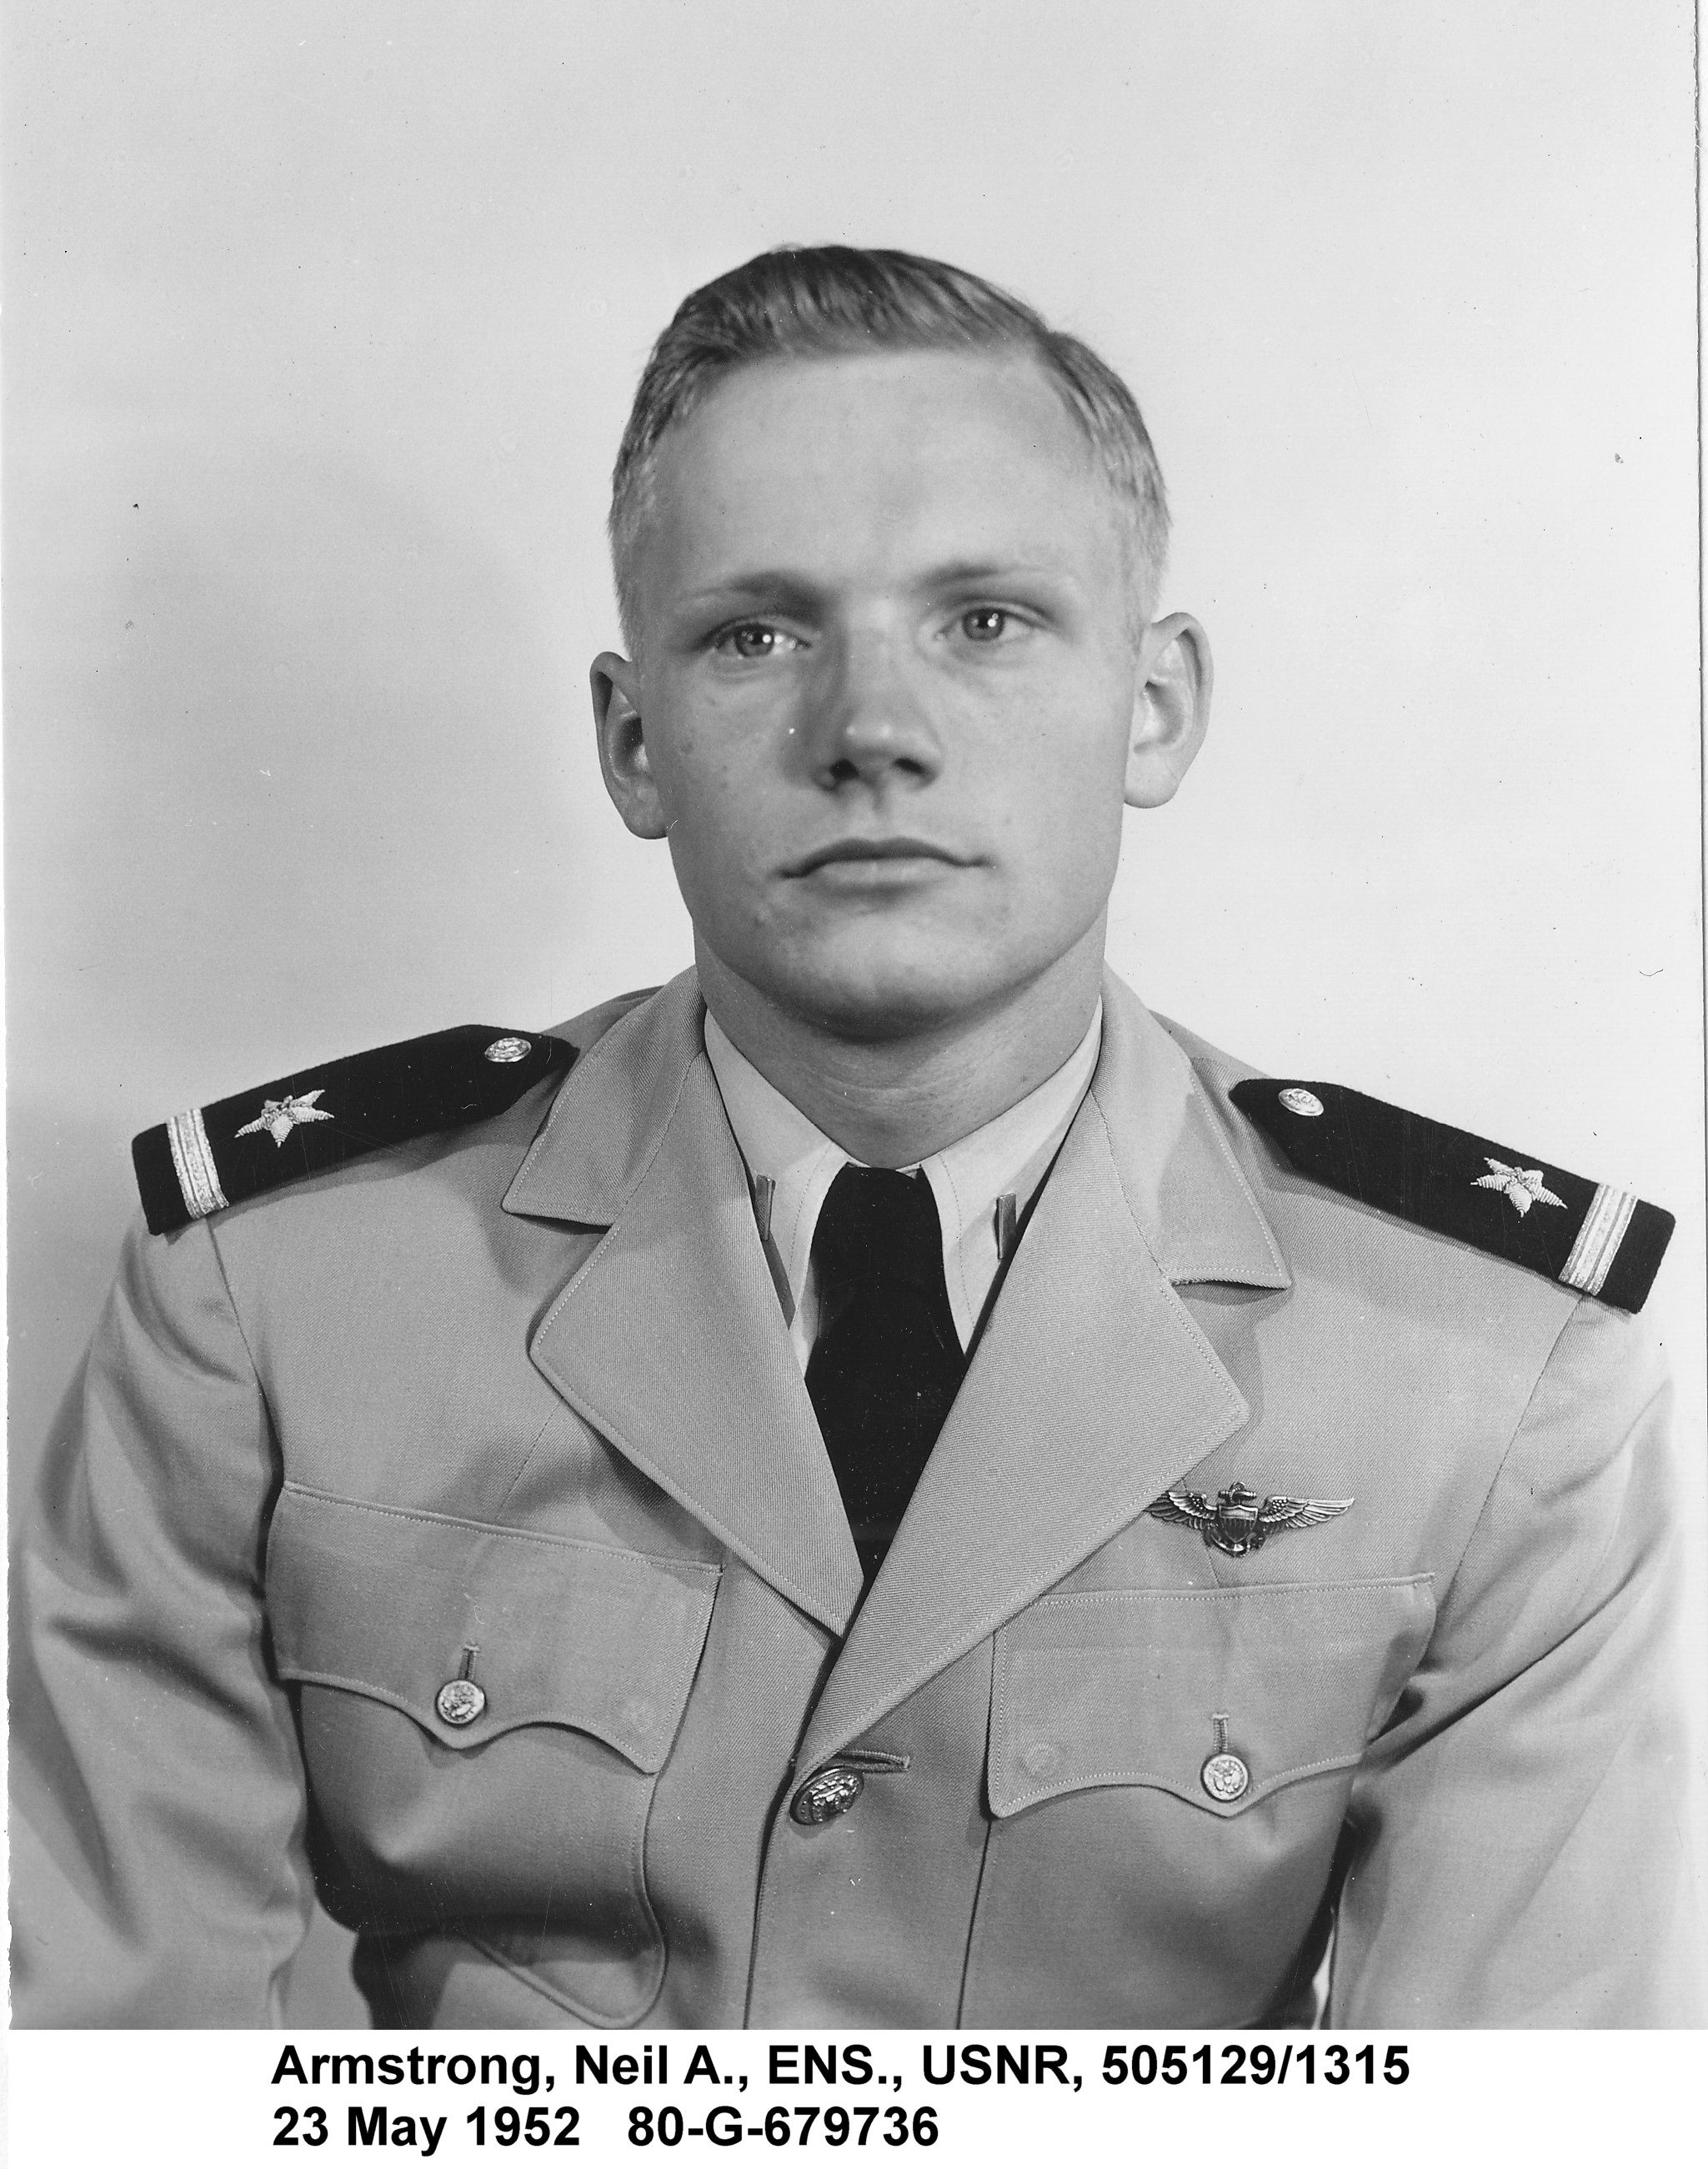 Neil Armstrong quando jovem (Foto: United States Navy/Wikimedia Commons)